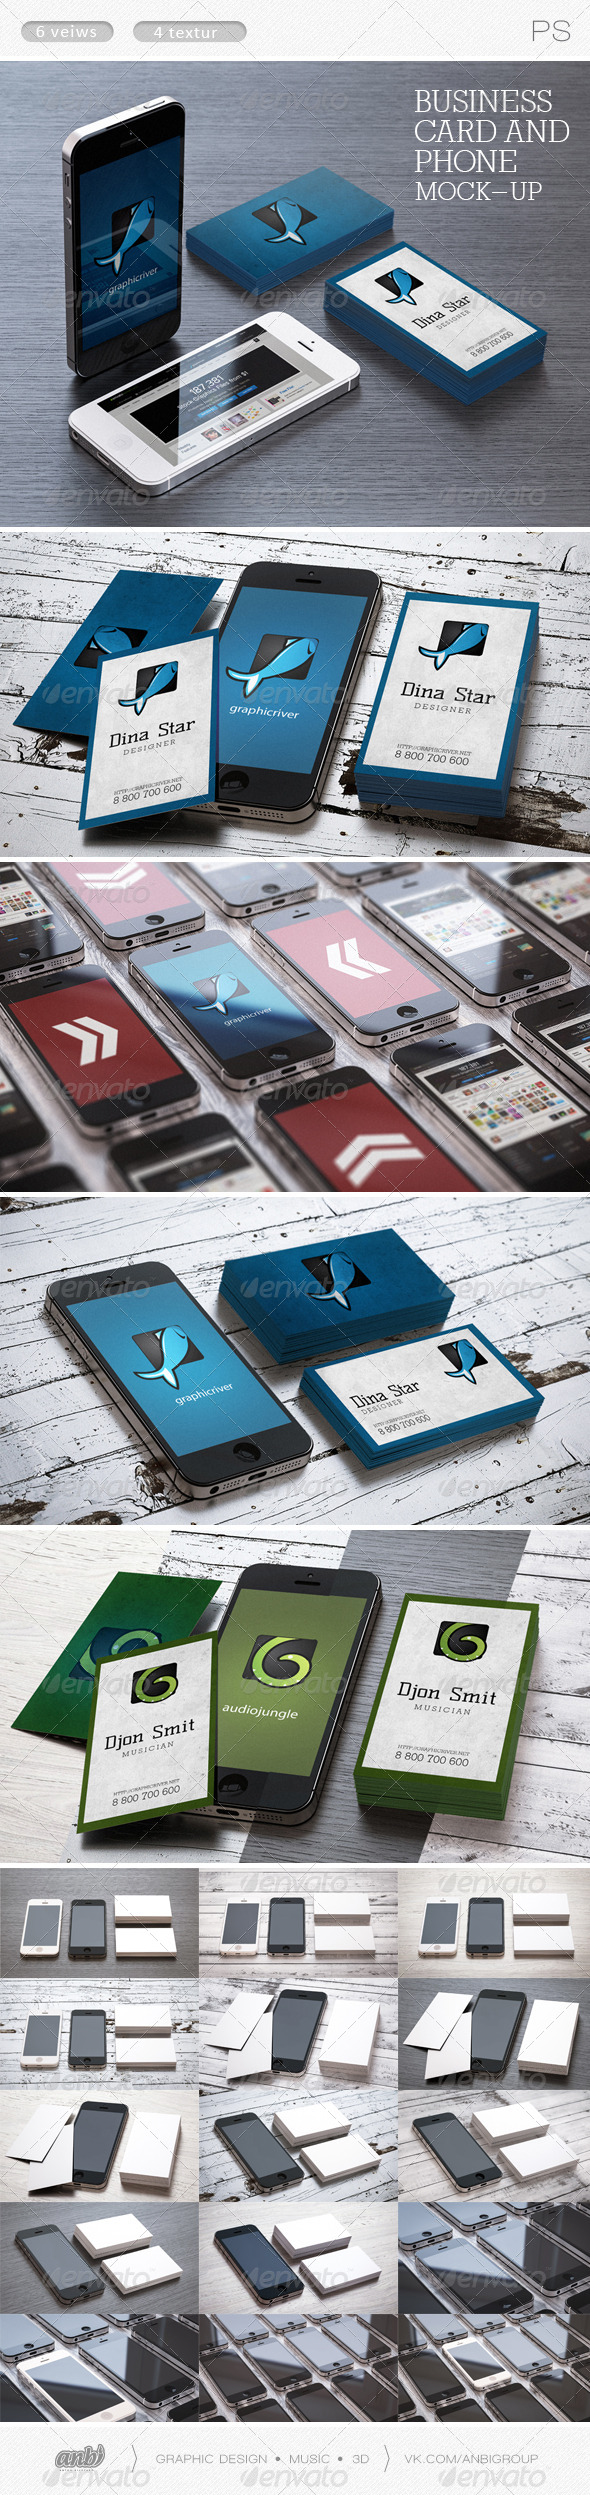 GraphicRiver Business card and phone mock-ups 6481566